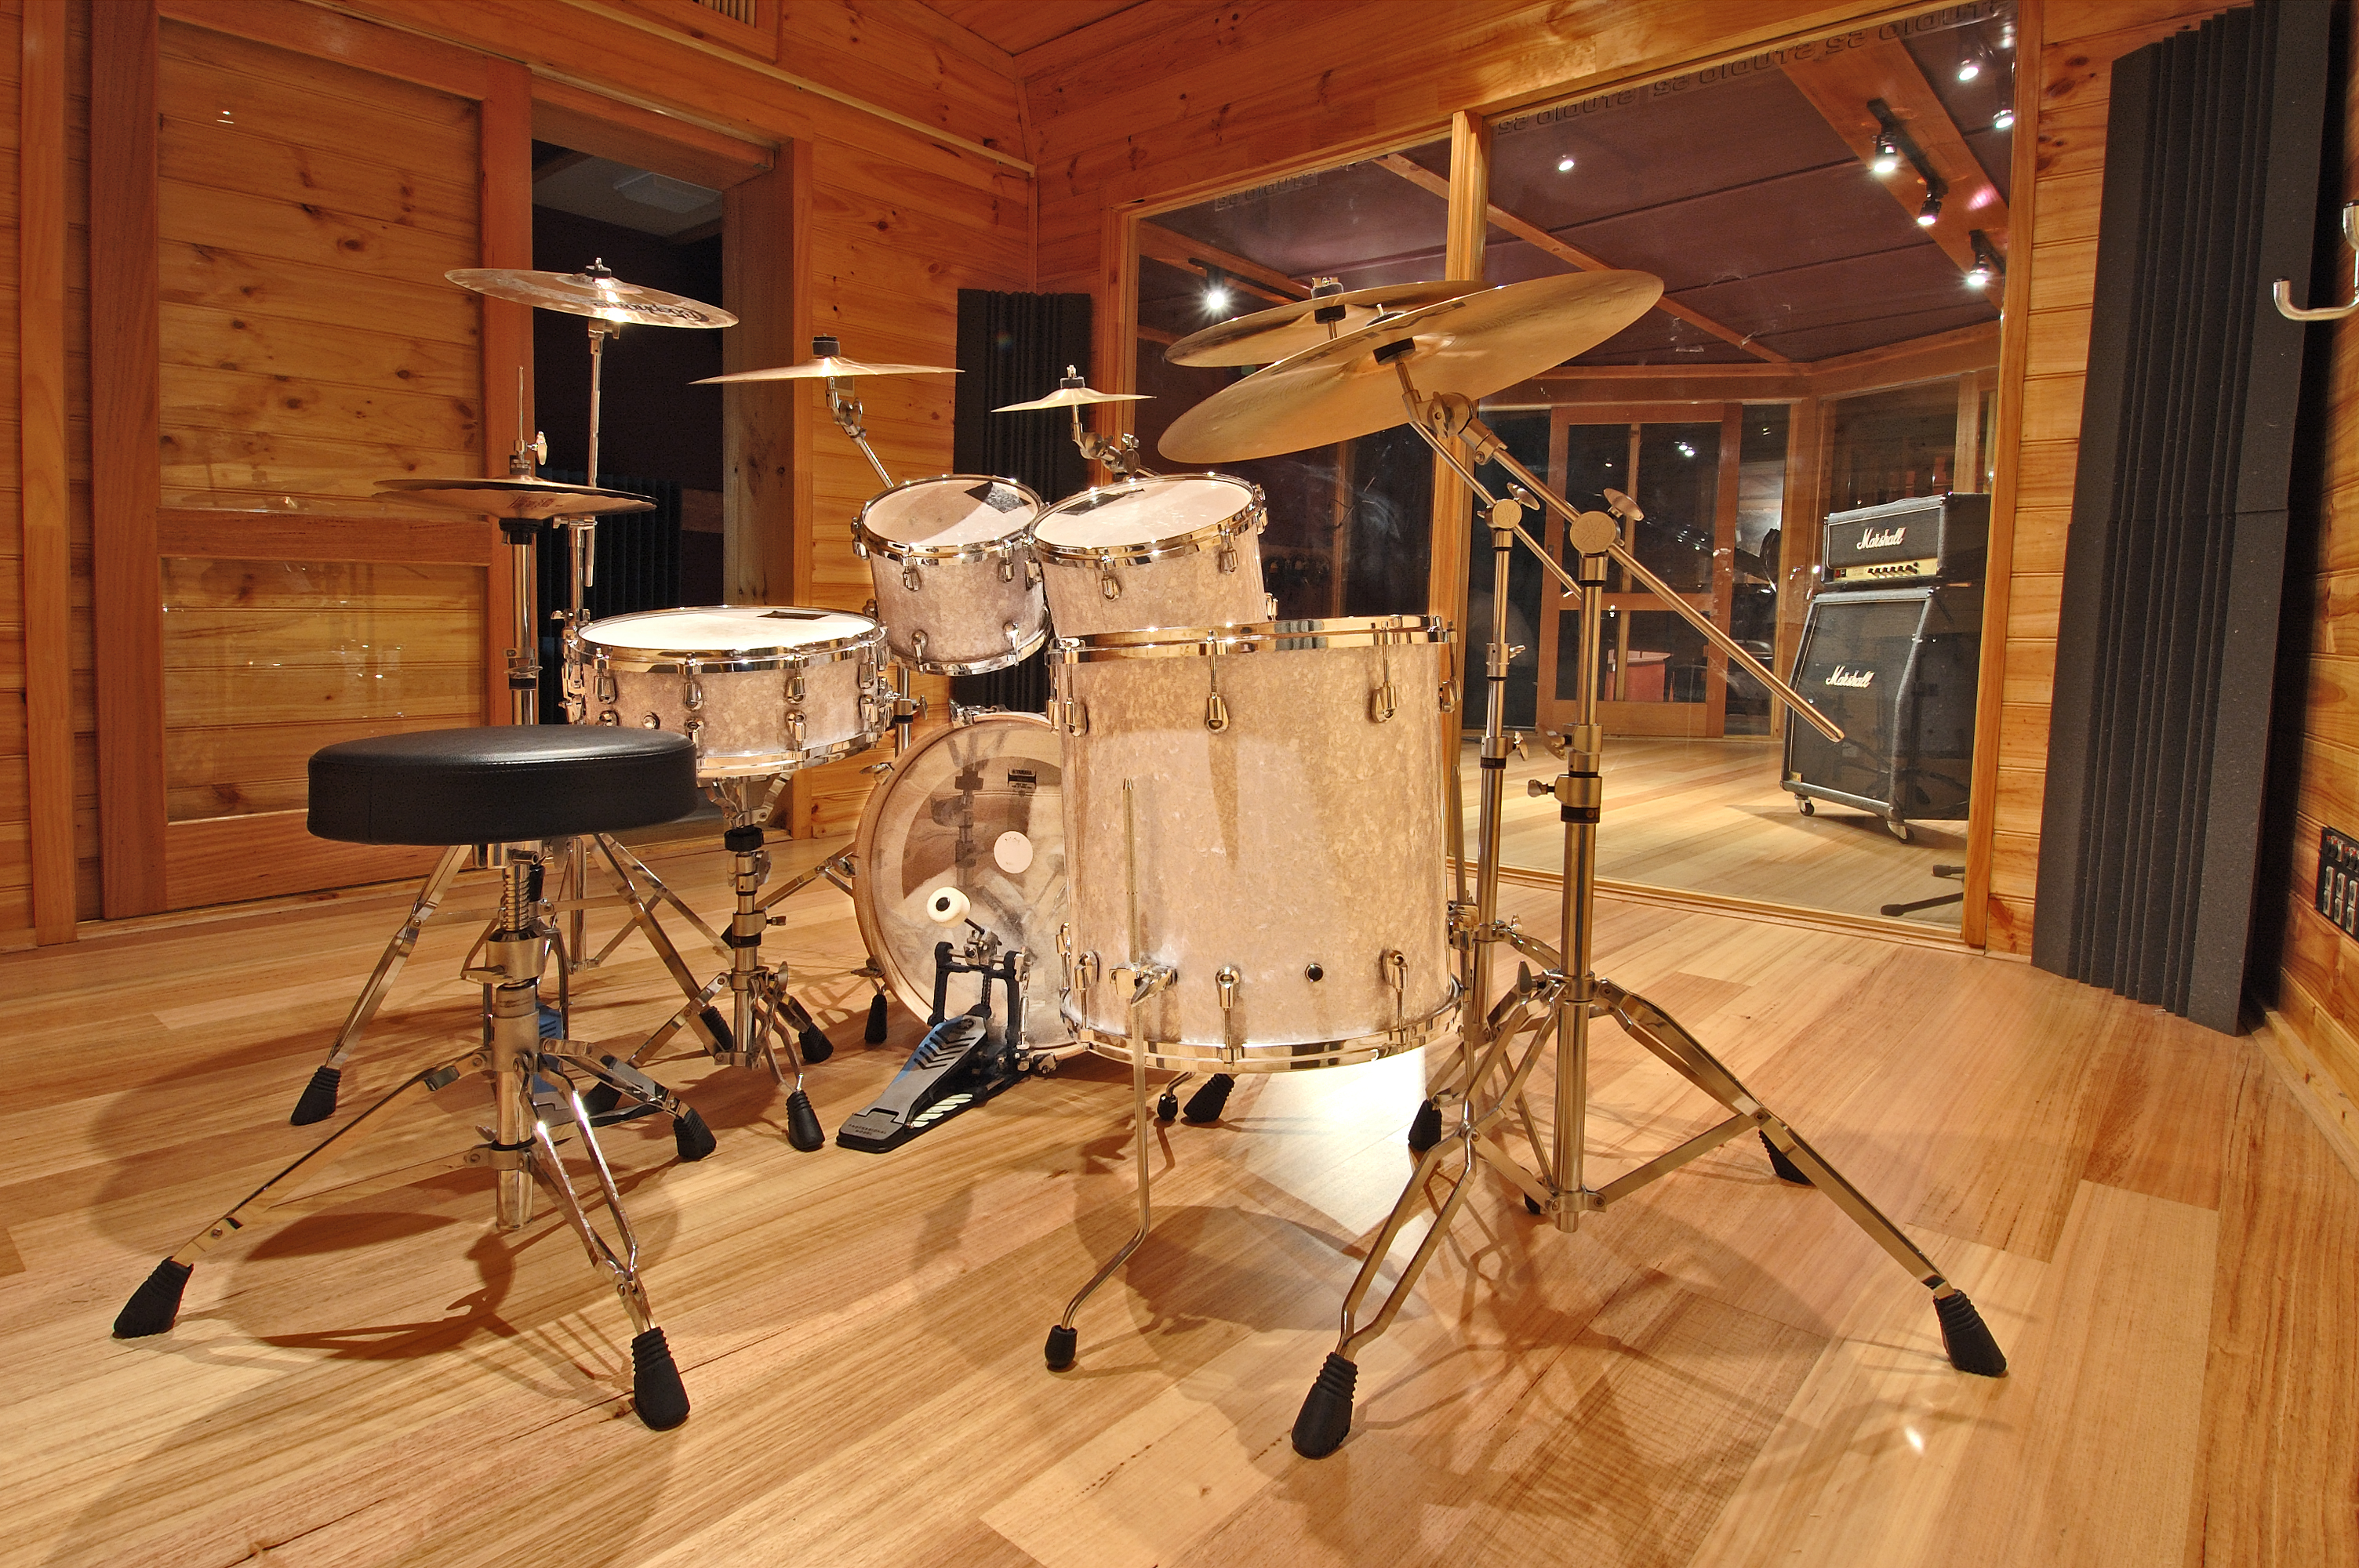 Studio A Drum booth at Studio 52 Melbourne featuring a Yamaha Absolute Nouveau drum kit with Paiste Signature Series cymbals and a combination of SE, Audio Technica & Sennheiser quality Microphones